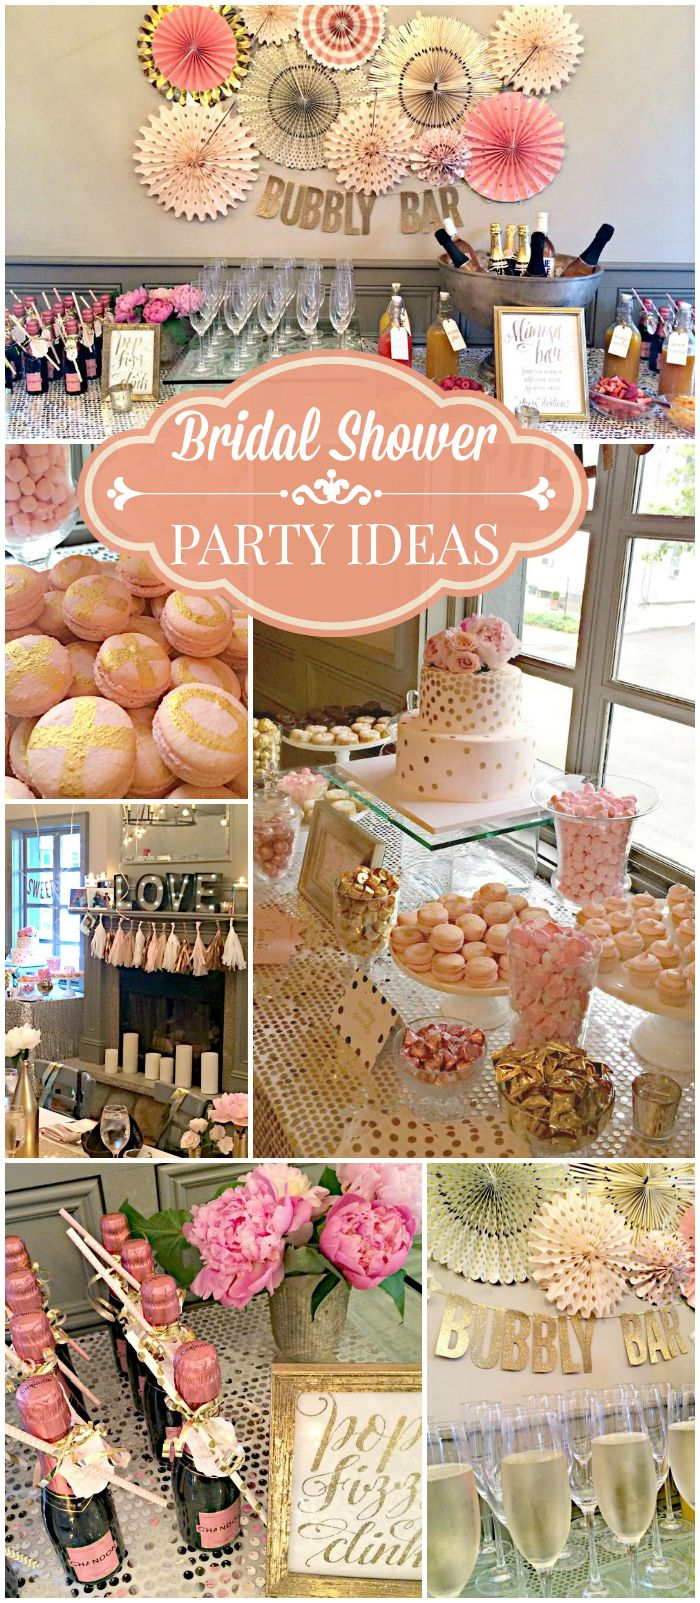 such a pretty pink and gold bubbly bar bridal shower see more party ideas at catchmypartycom